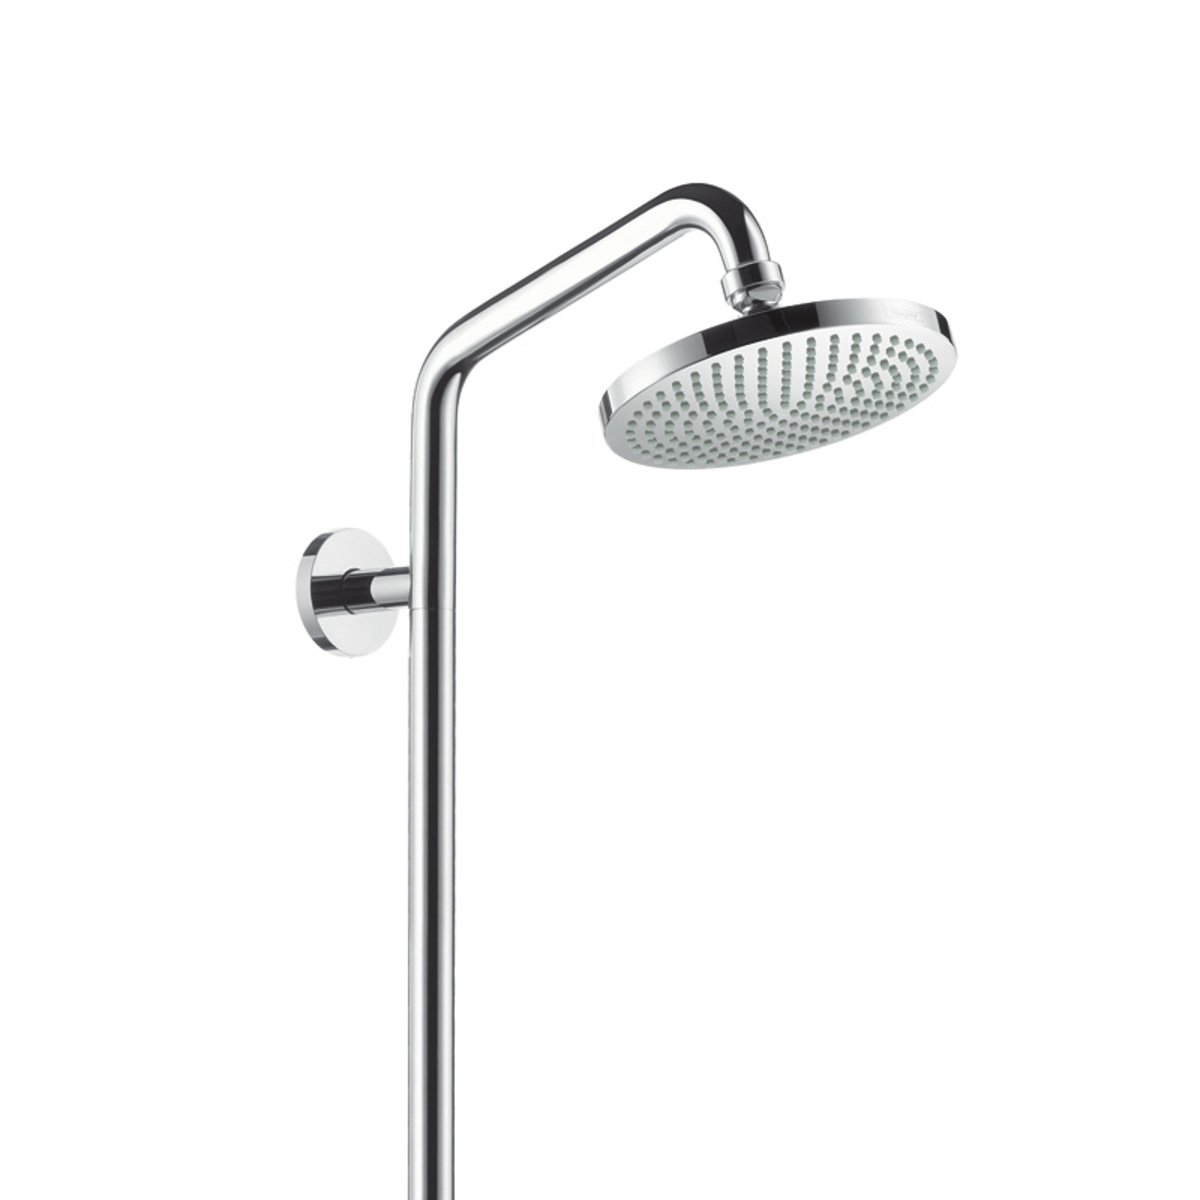 hansgrohe raindance colonne de douche avec robinet de douche chrome 27154000. Black Bedroom Furniture Sets. Home Design Ideas